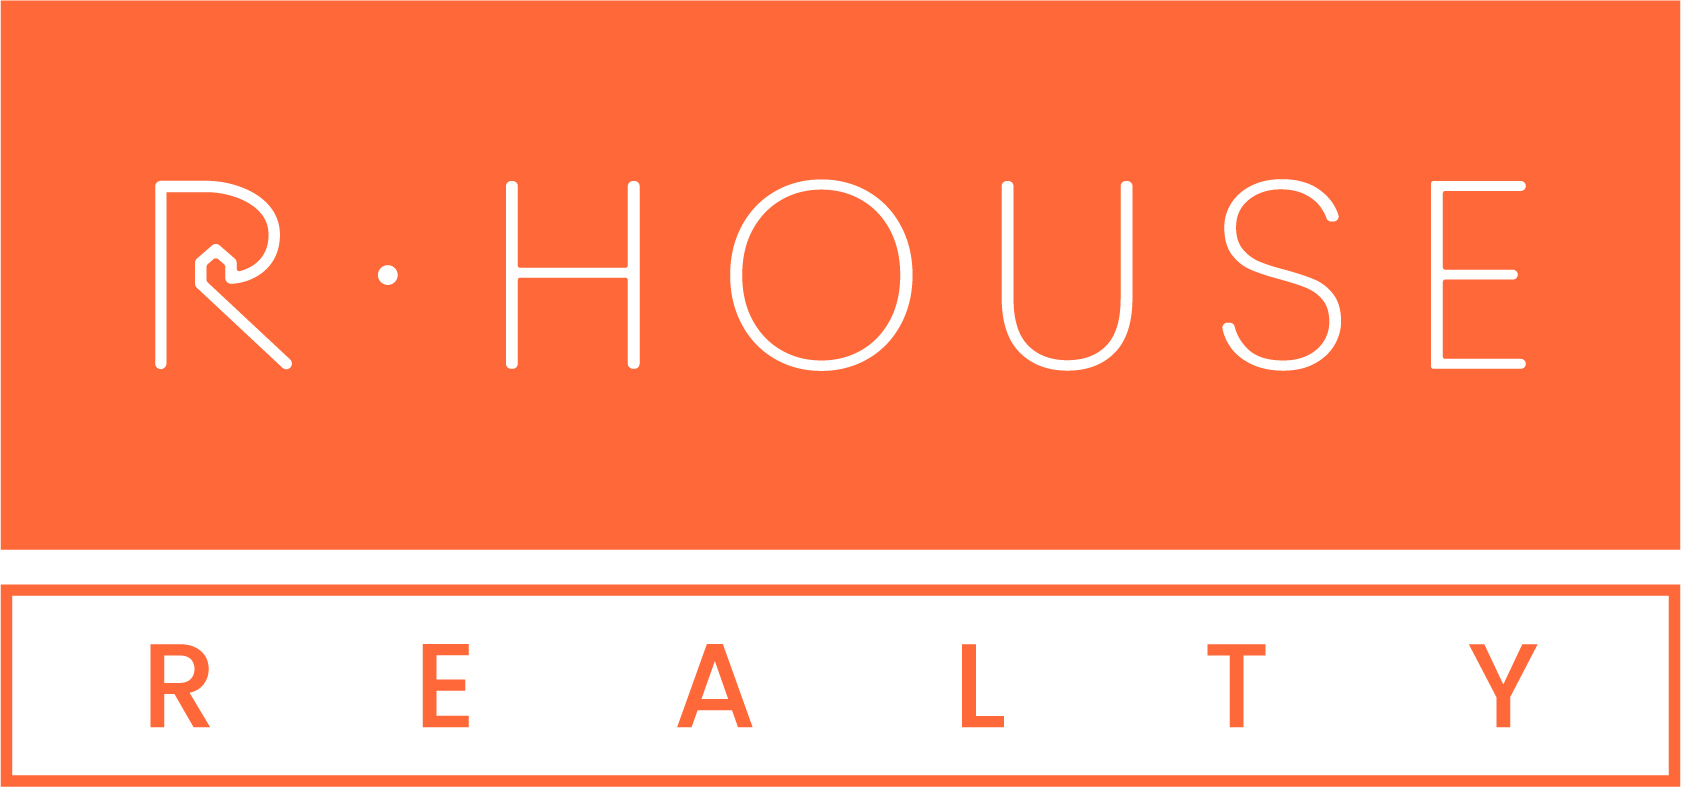 R House Realty logo